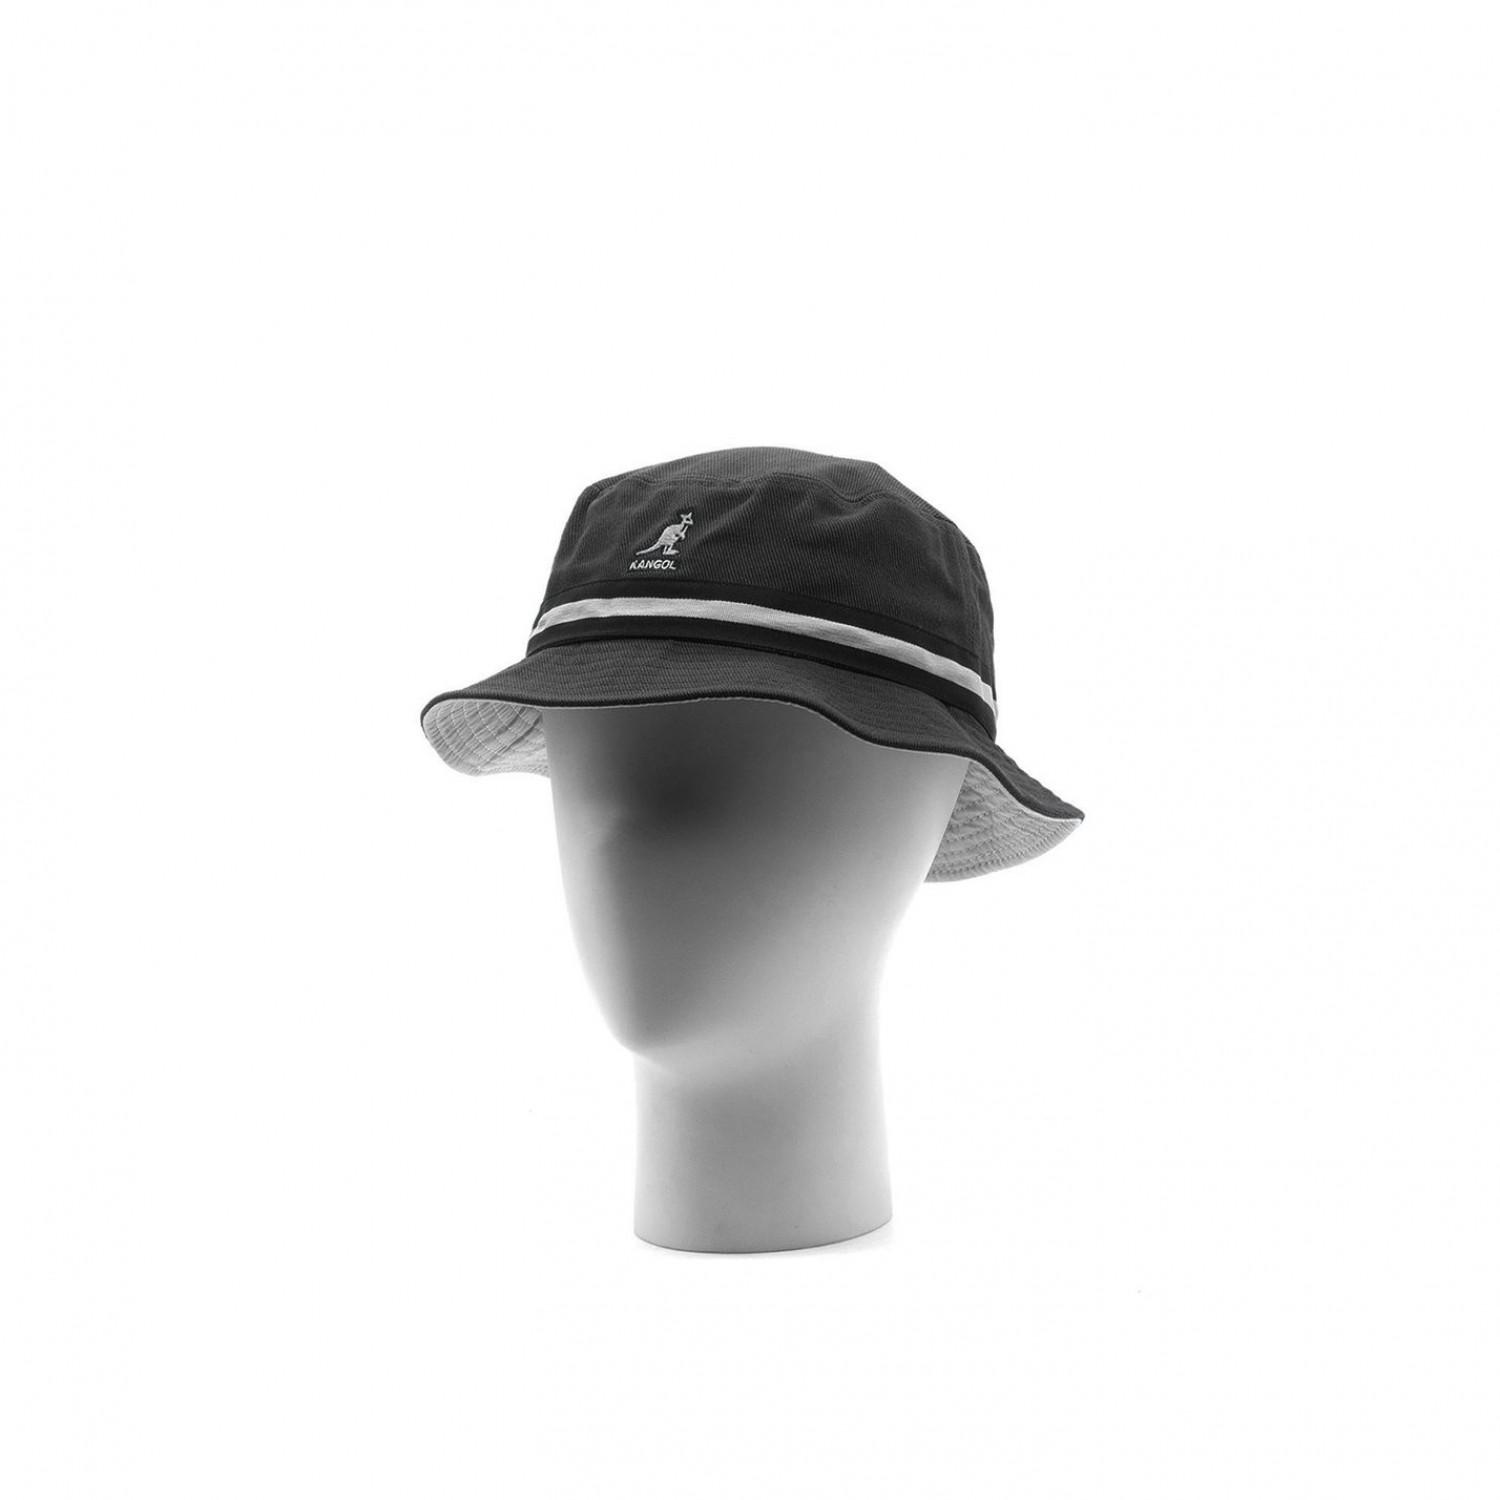 Панама Kangol - Stripe Lahinch Black